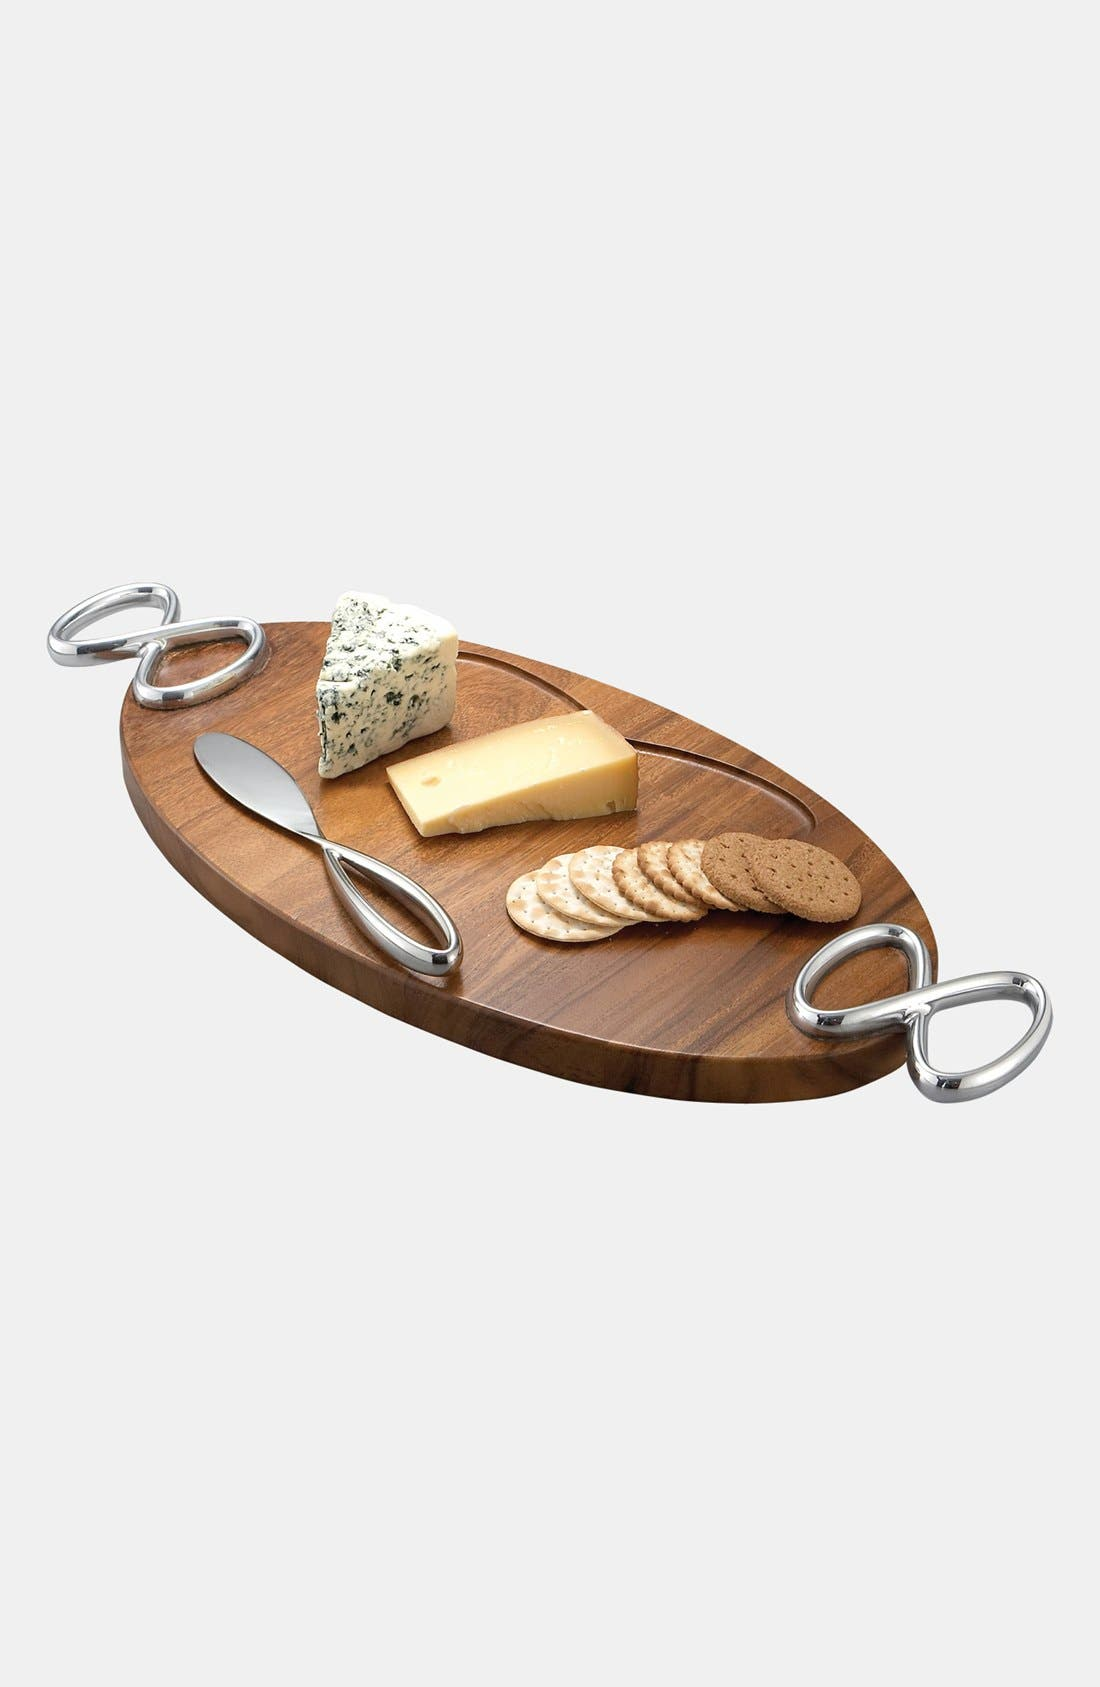 Alternate Image 1 Selected - Nambé Infinity Cheese Board & Knife